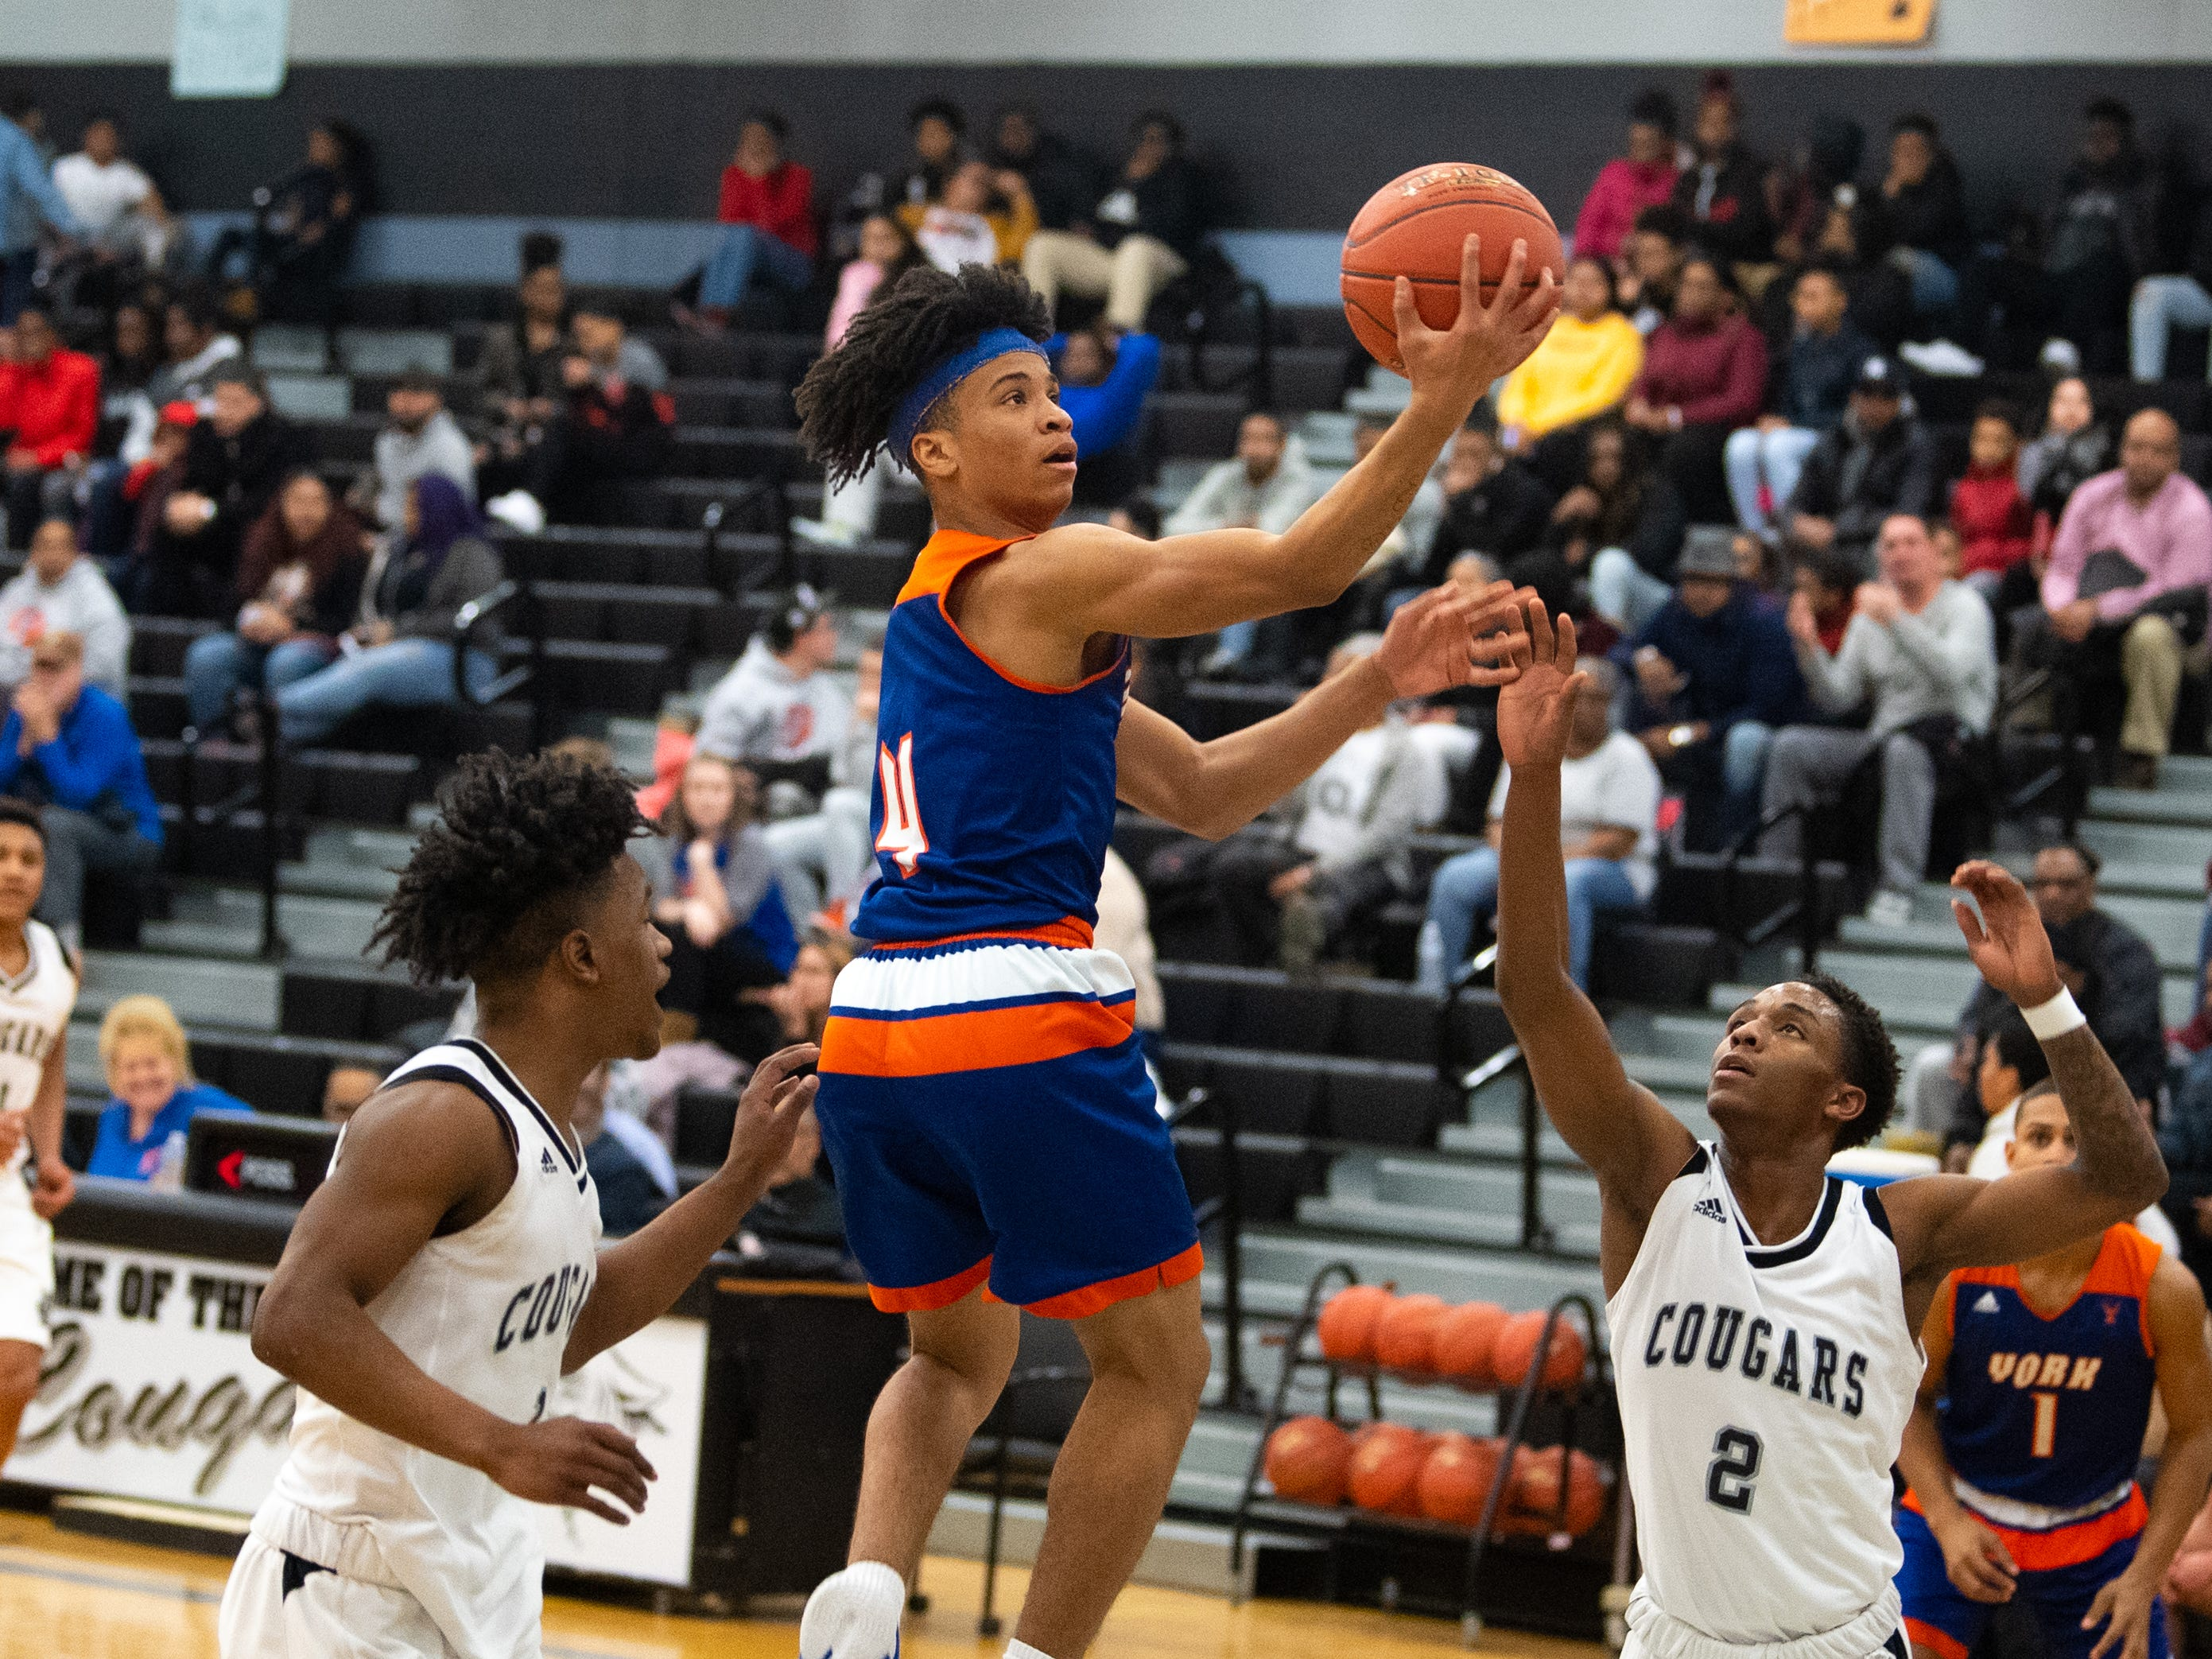 Jaevon Woodyard (4) sails to the basket during the boys' basketball game between Harrisburg High and York High, Wednesday, January 23, 2019. The Cougars defeated the Bearcats 69-65.